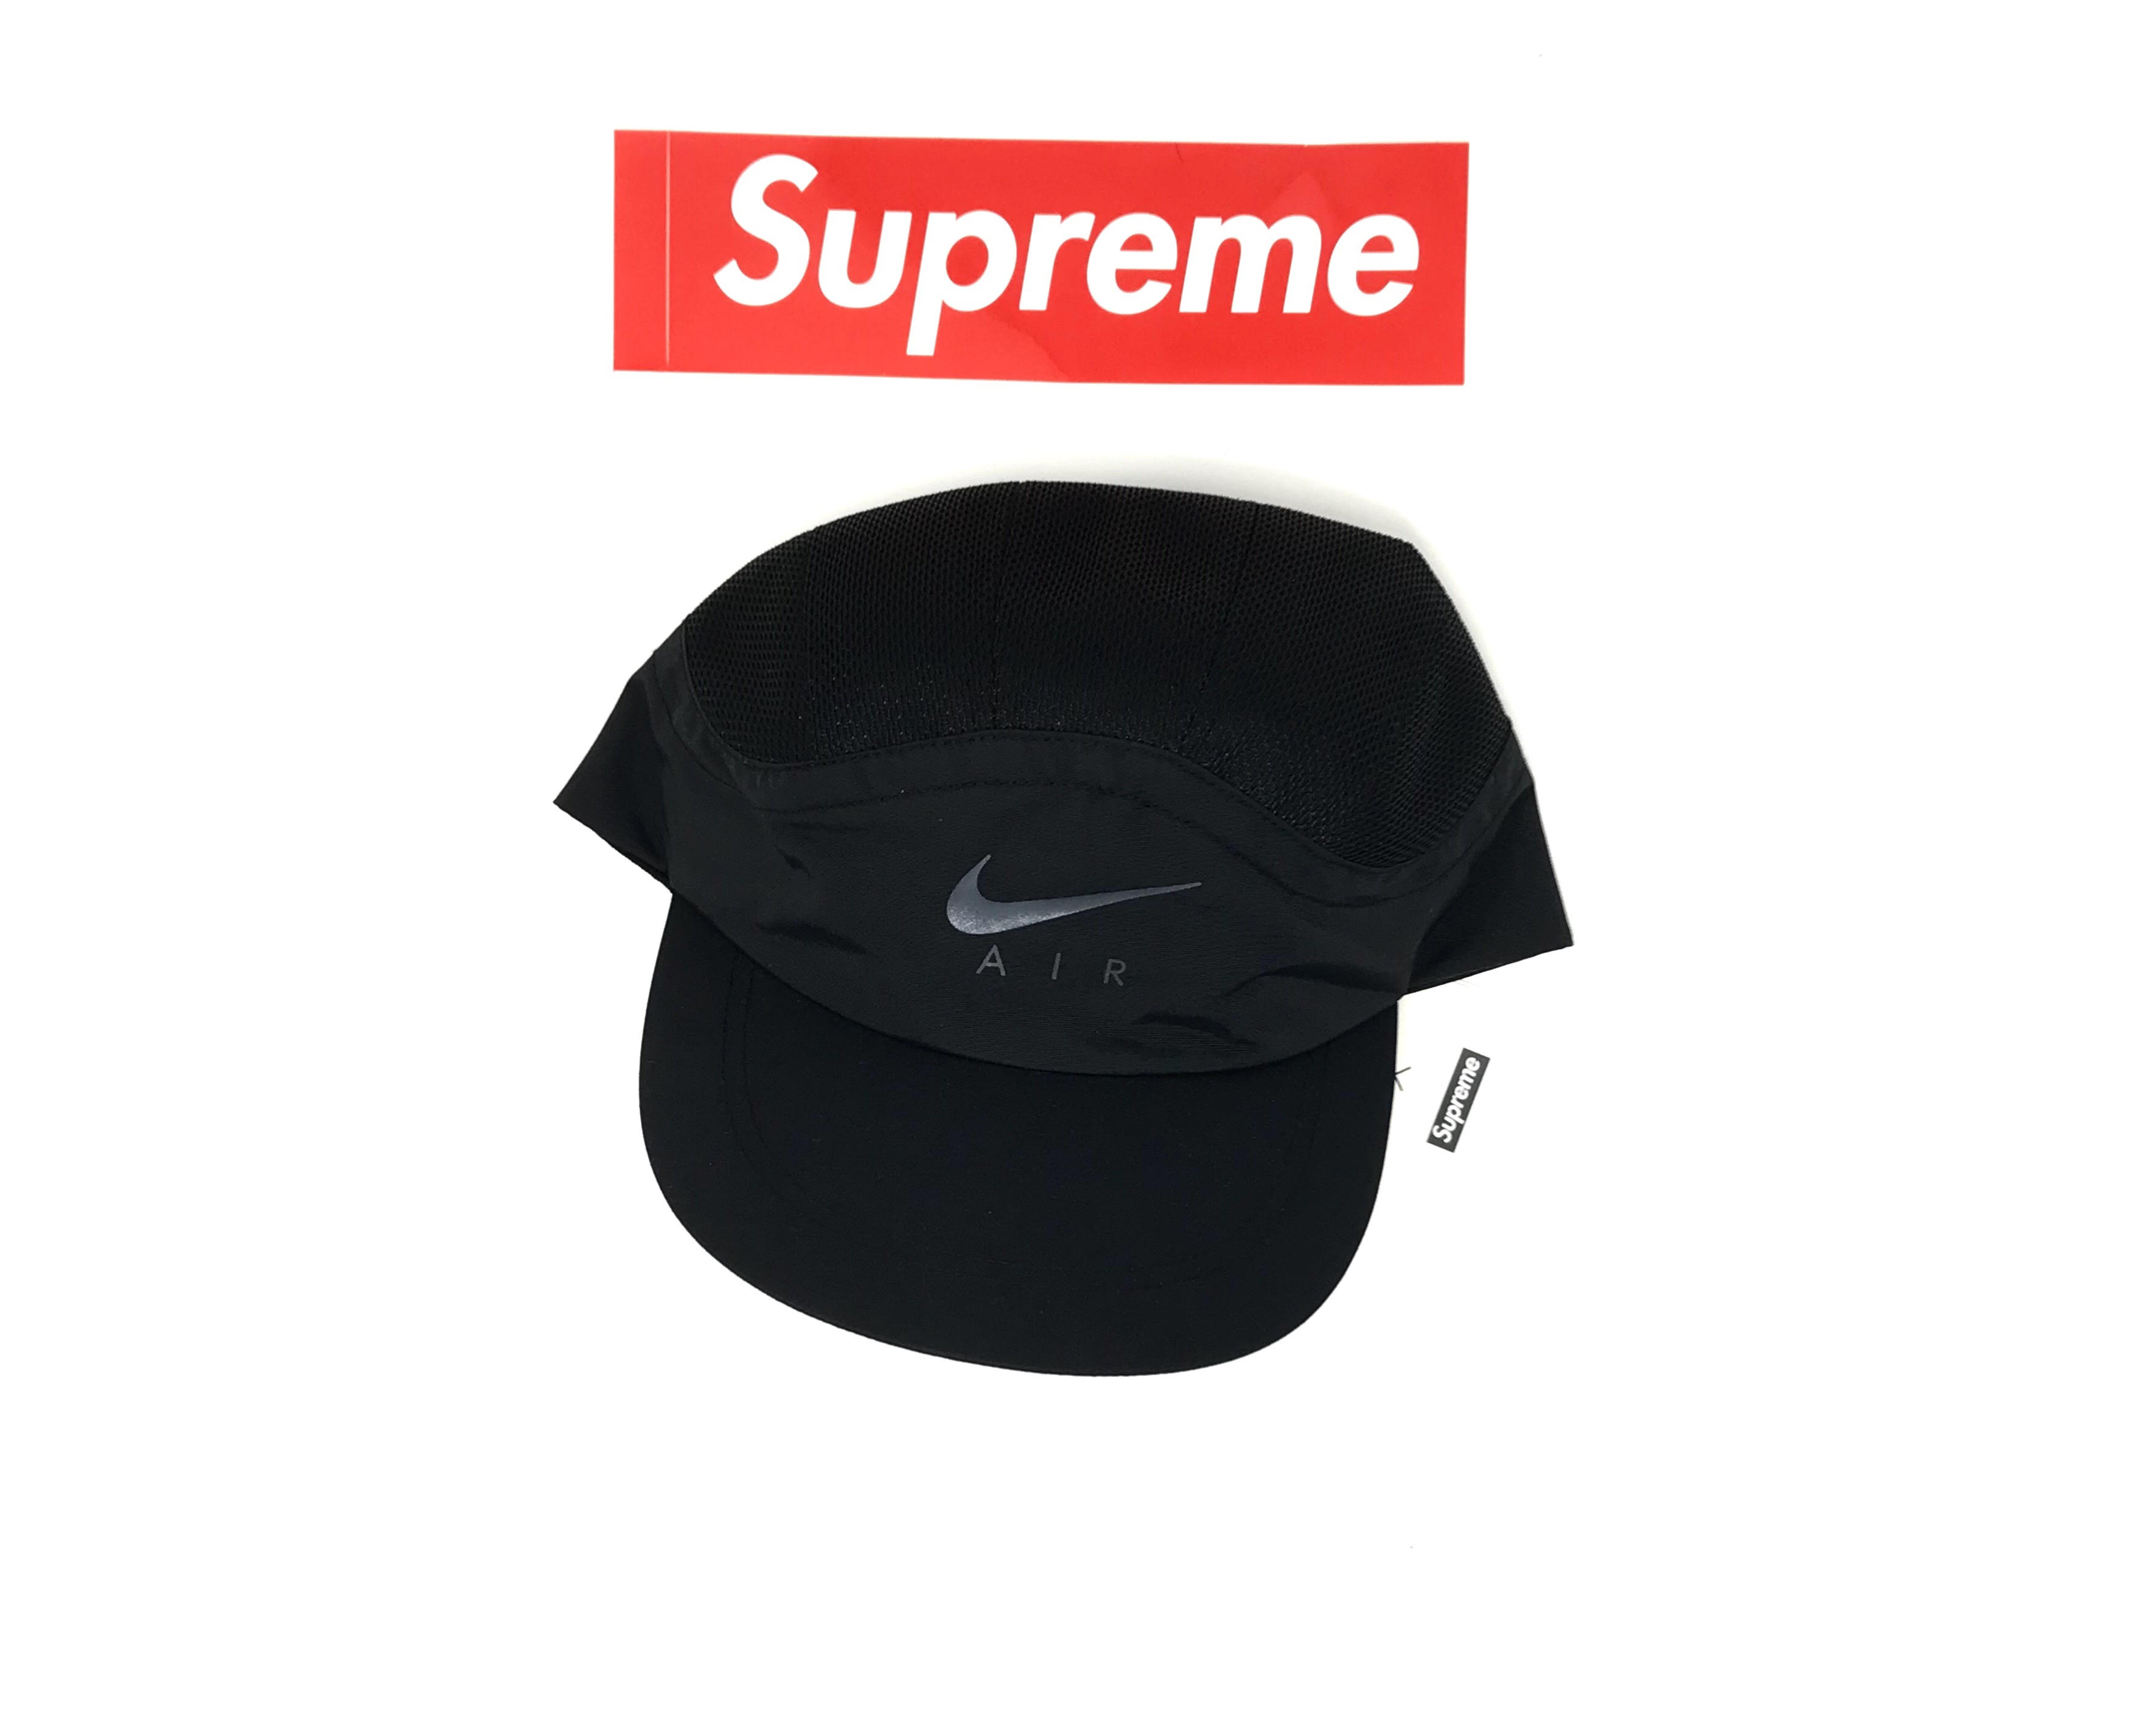 53d7b8d50e1 Supreme Supreme x Nike Trail Running Hat Size one size - Hats for Sale -  Grailed